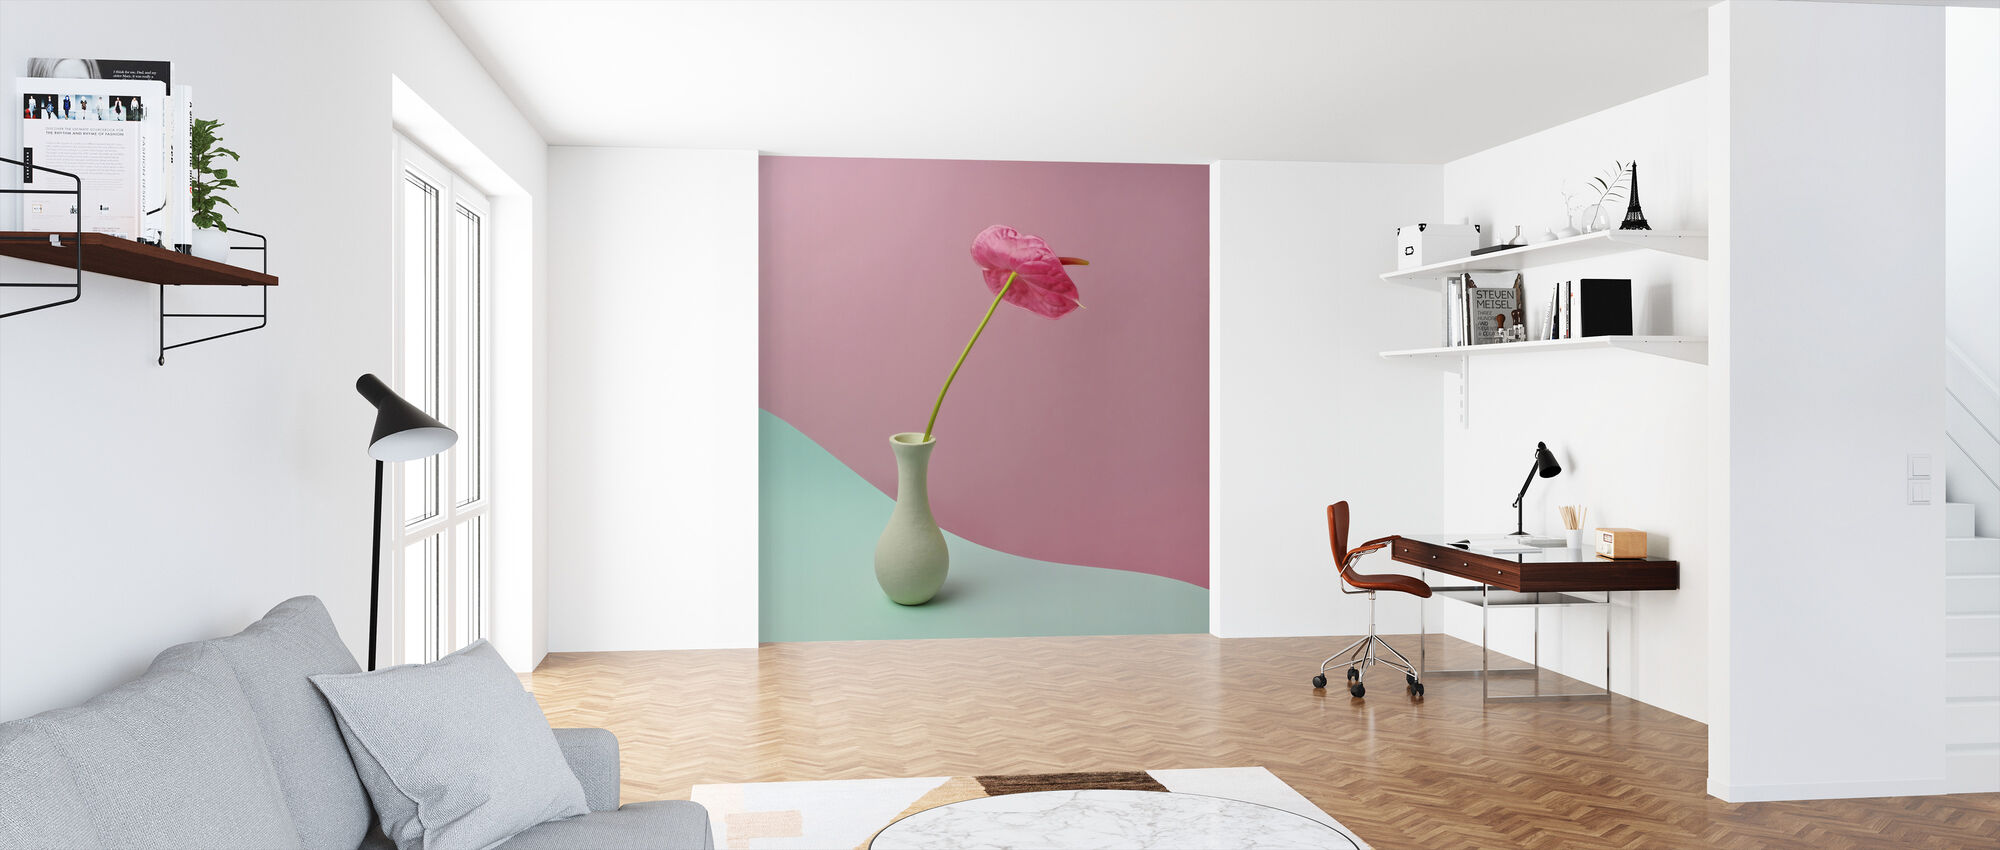 Anthurium in White Vase - Wallpaper - Office